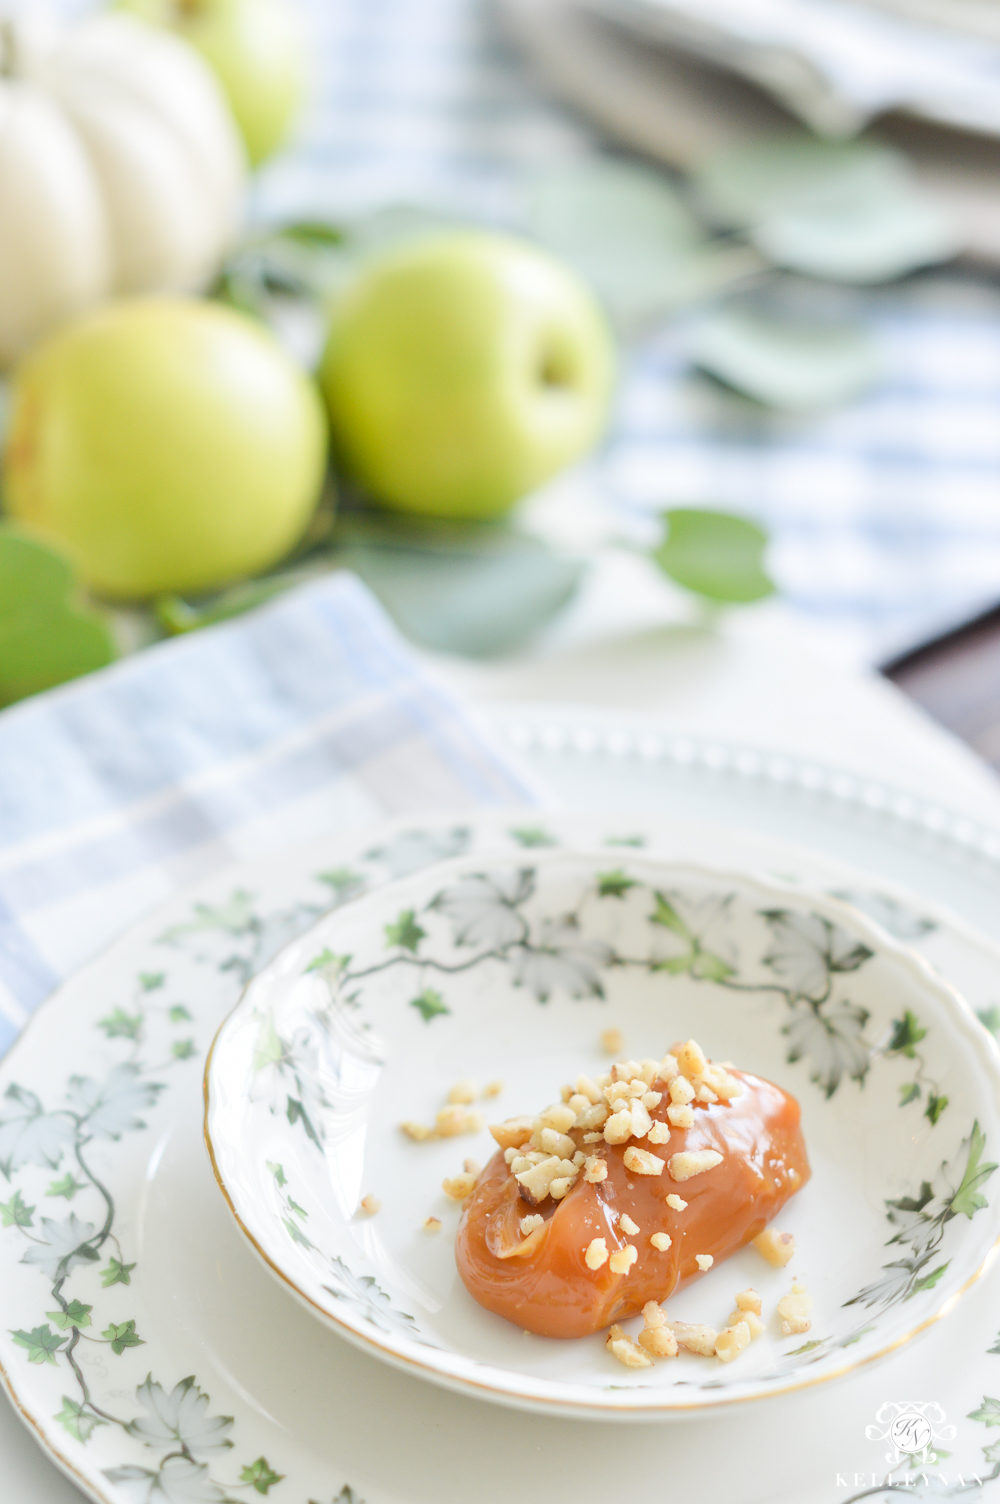 Fall Caramel Apple Table Place Setting Ideas- caramel at place setting